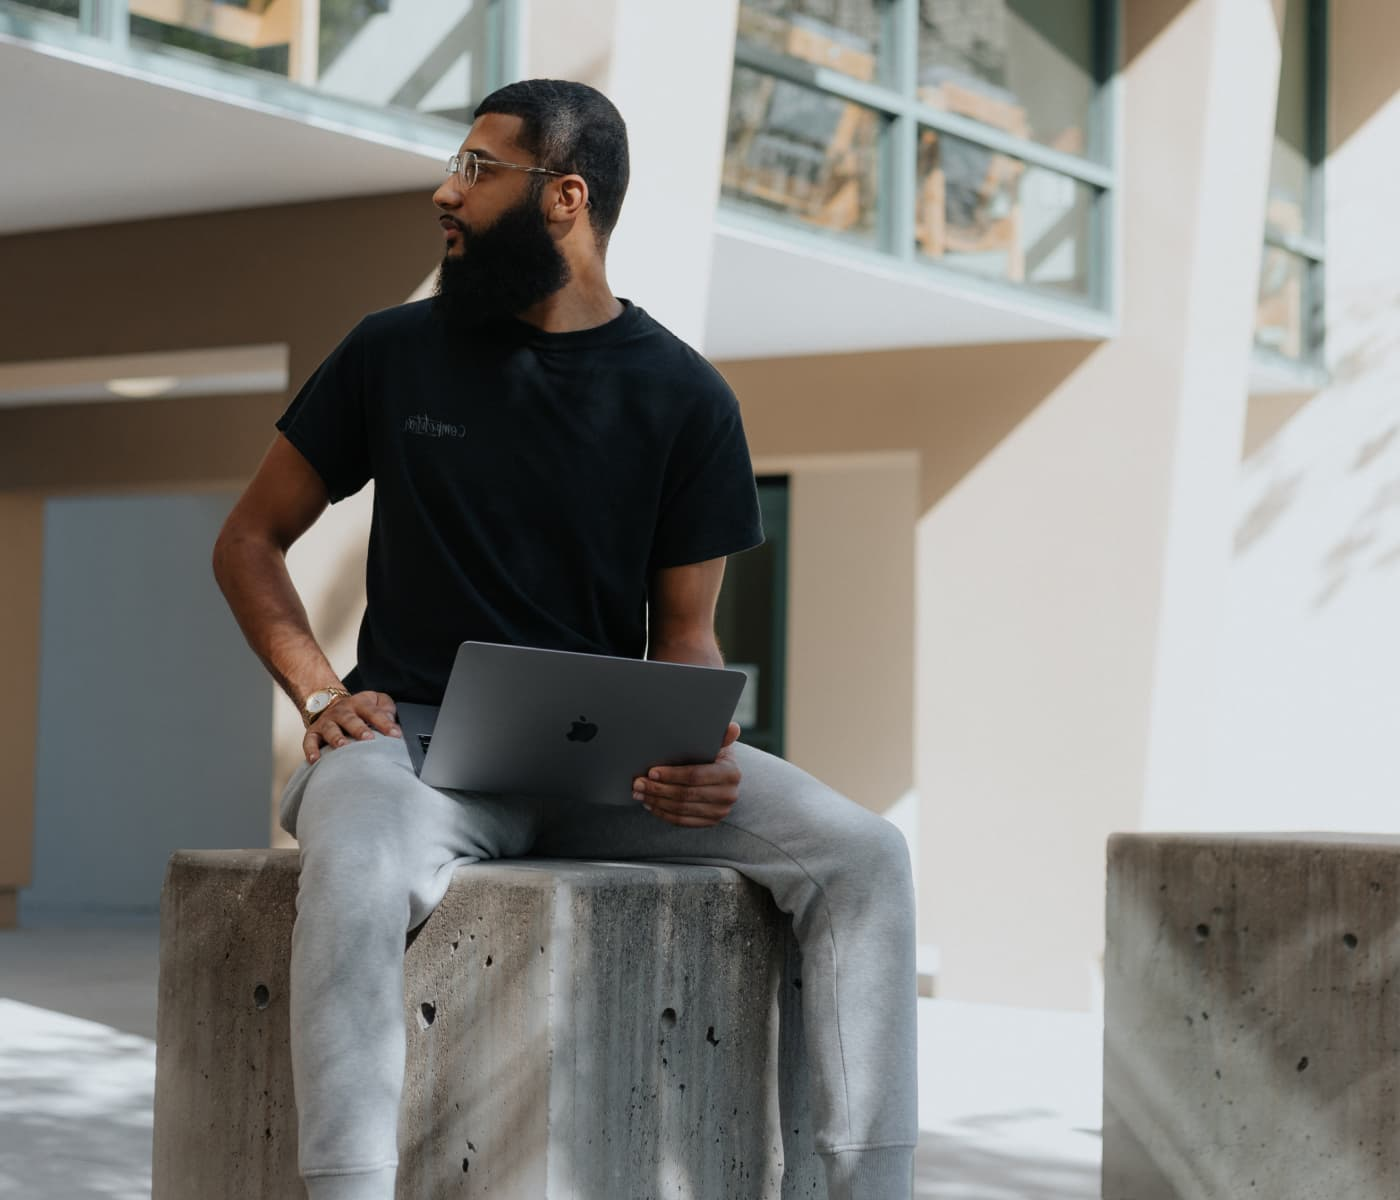 Image of man with beard working with laptop